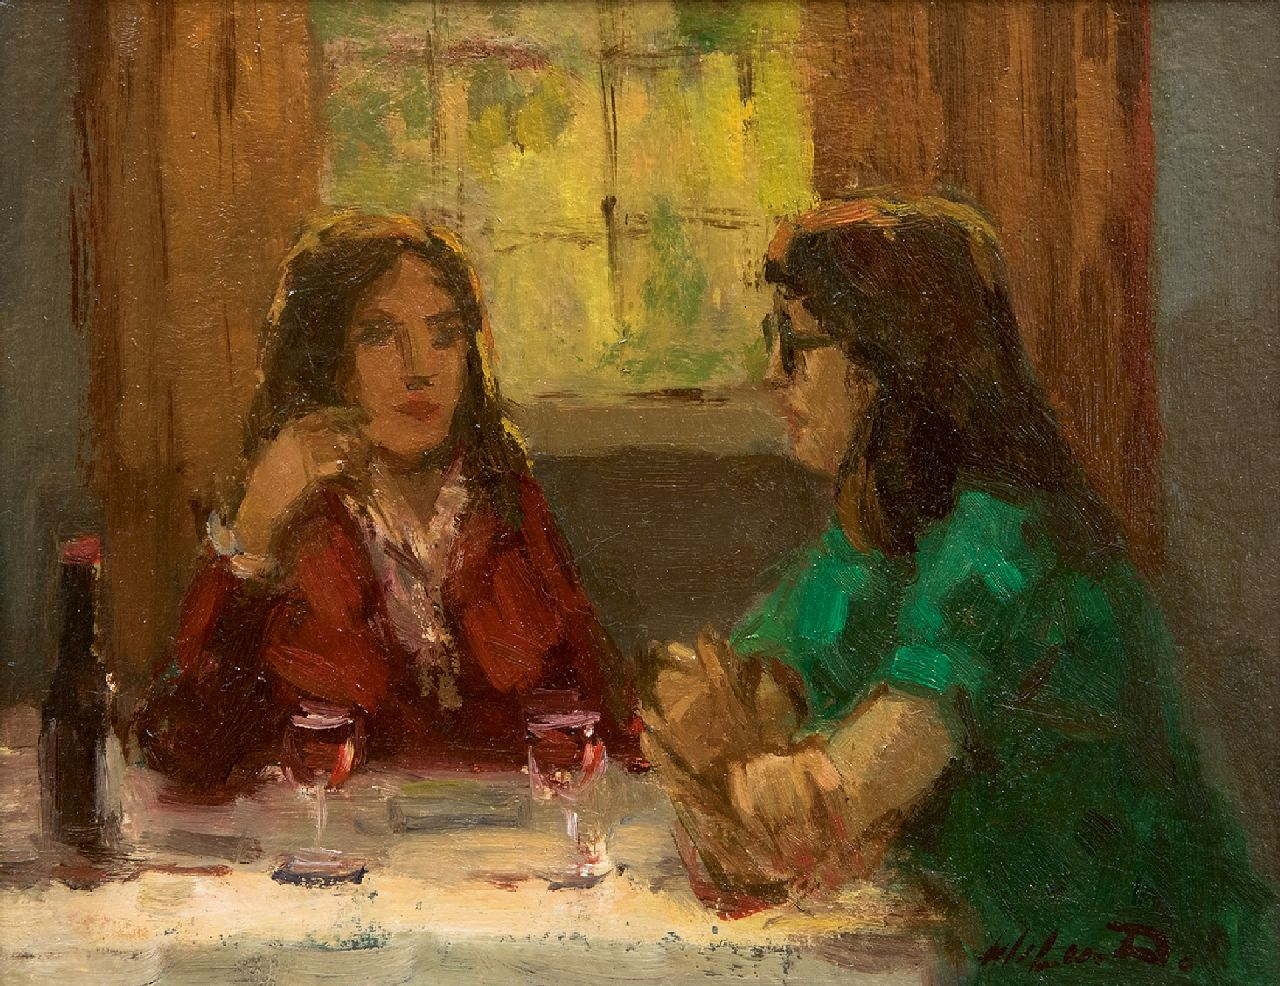 Wil van Dinther | Sharing confidences, oil on board, 14.9 x 18.8 cm, signed l.r. and on the reverse